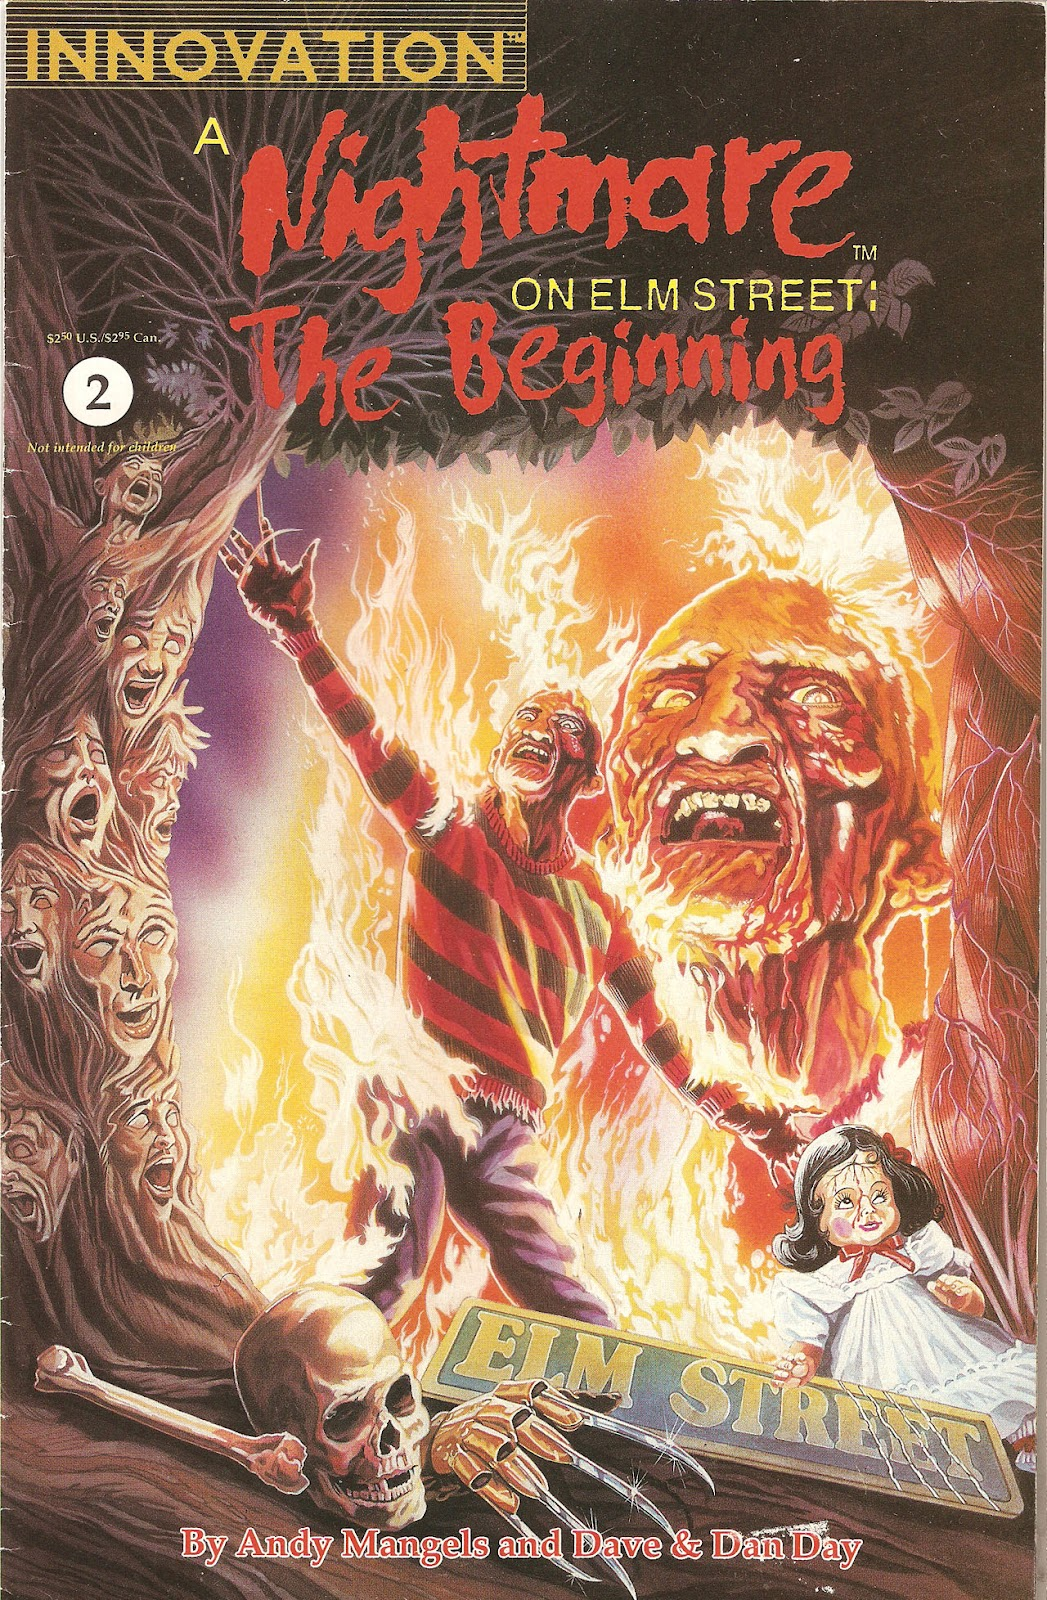 Read online A Nightmare on Elm Street: The Beginning comic -  Issue #2 - 1